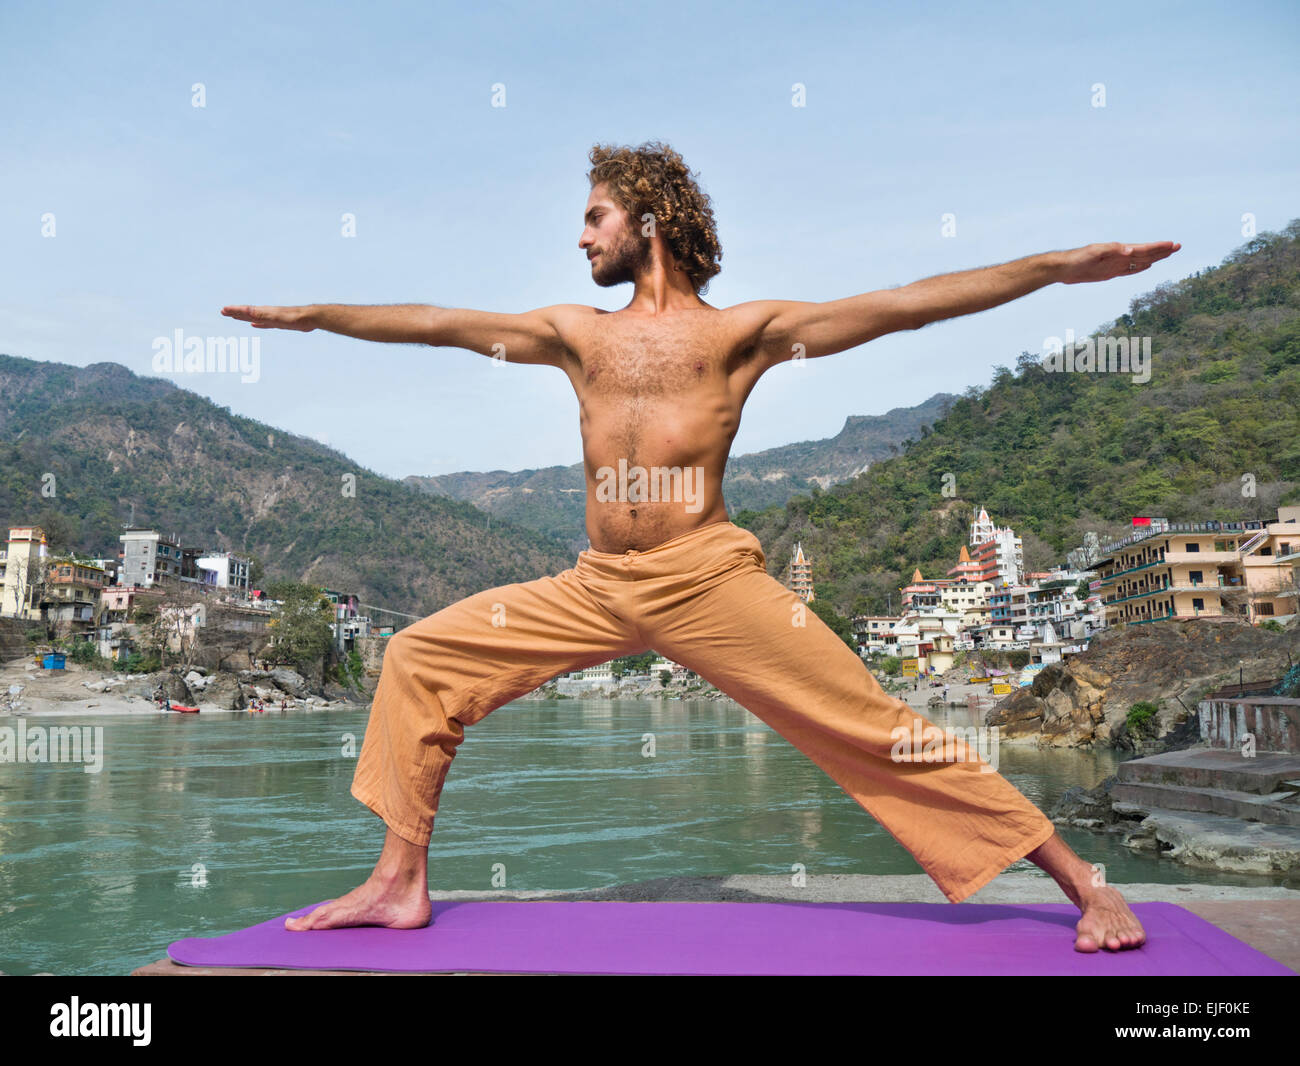 Ein Mann üben Yoga-Krieger-Pose am Ganges-Fluss in Rishikesh, Indien Stockbild